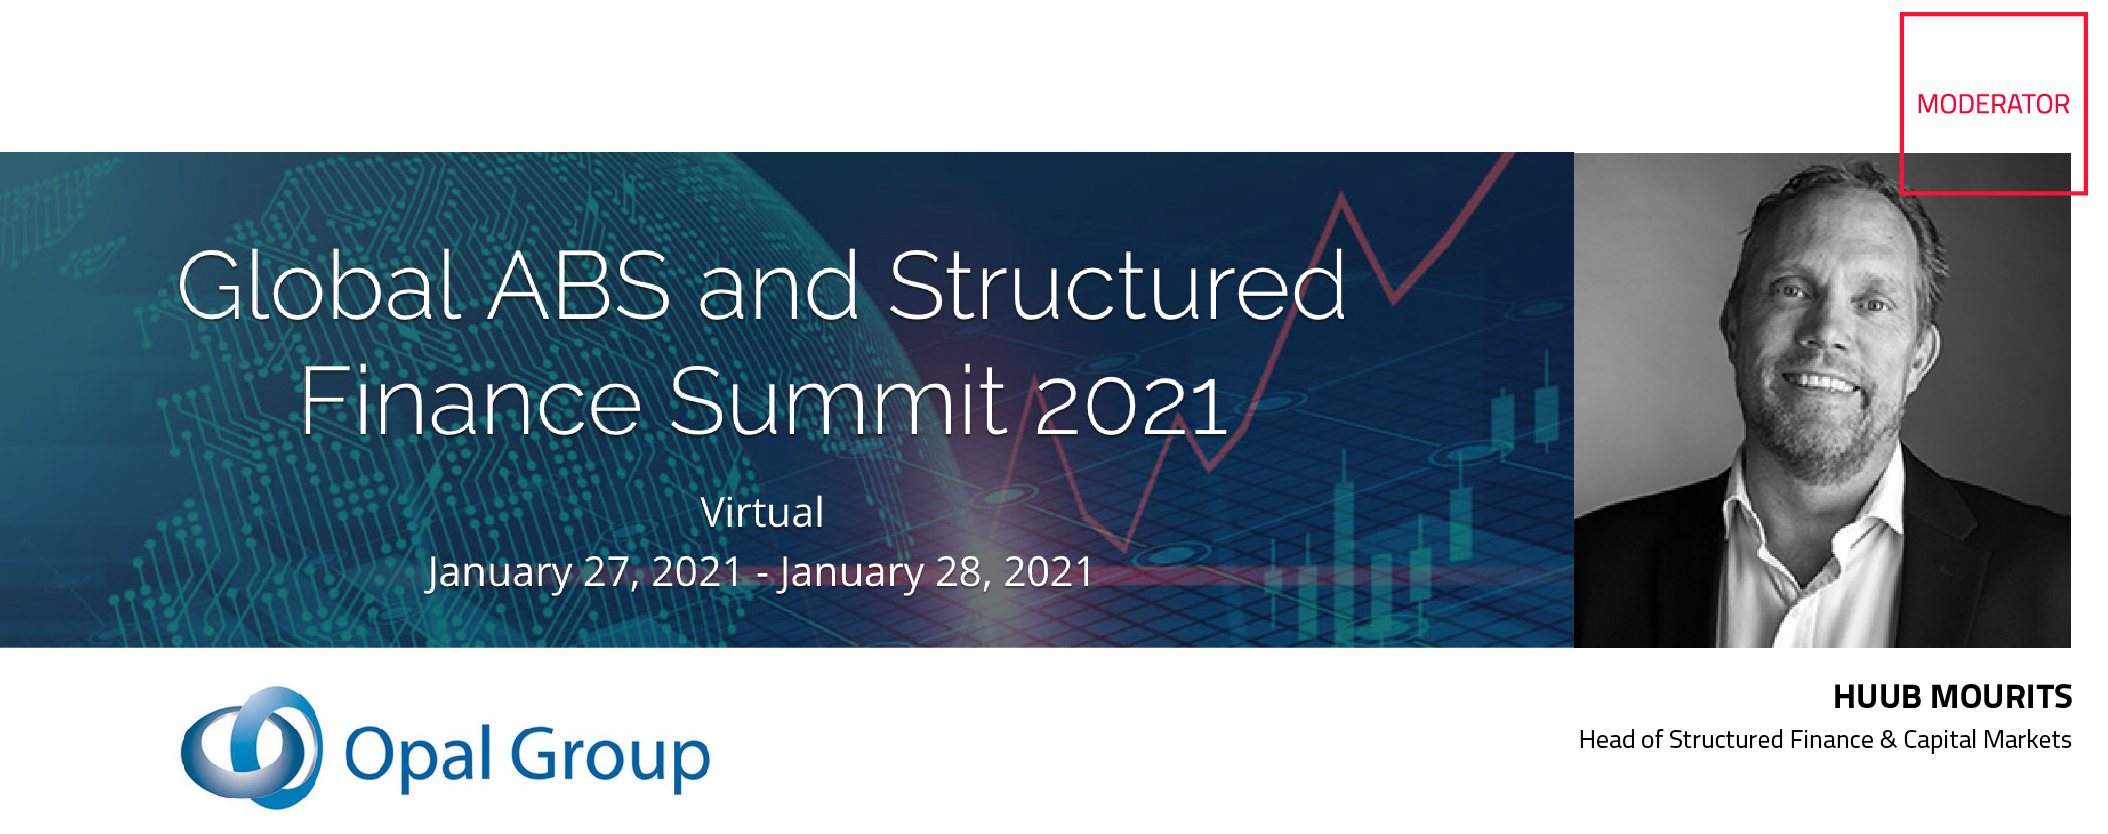 Global ABS and Structured Finance Summit 2021